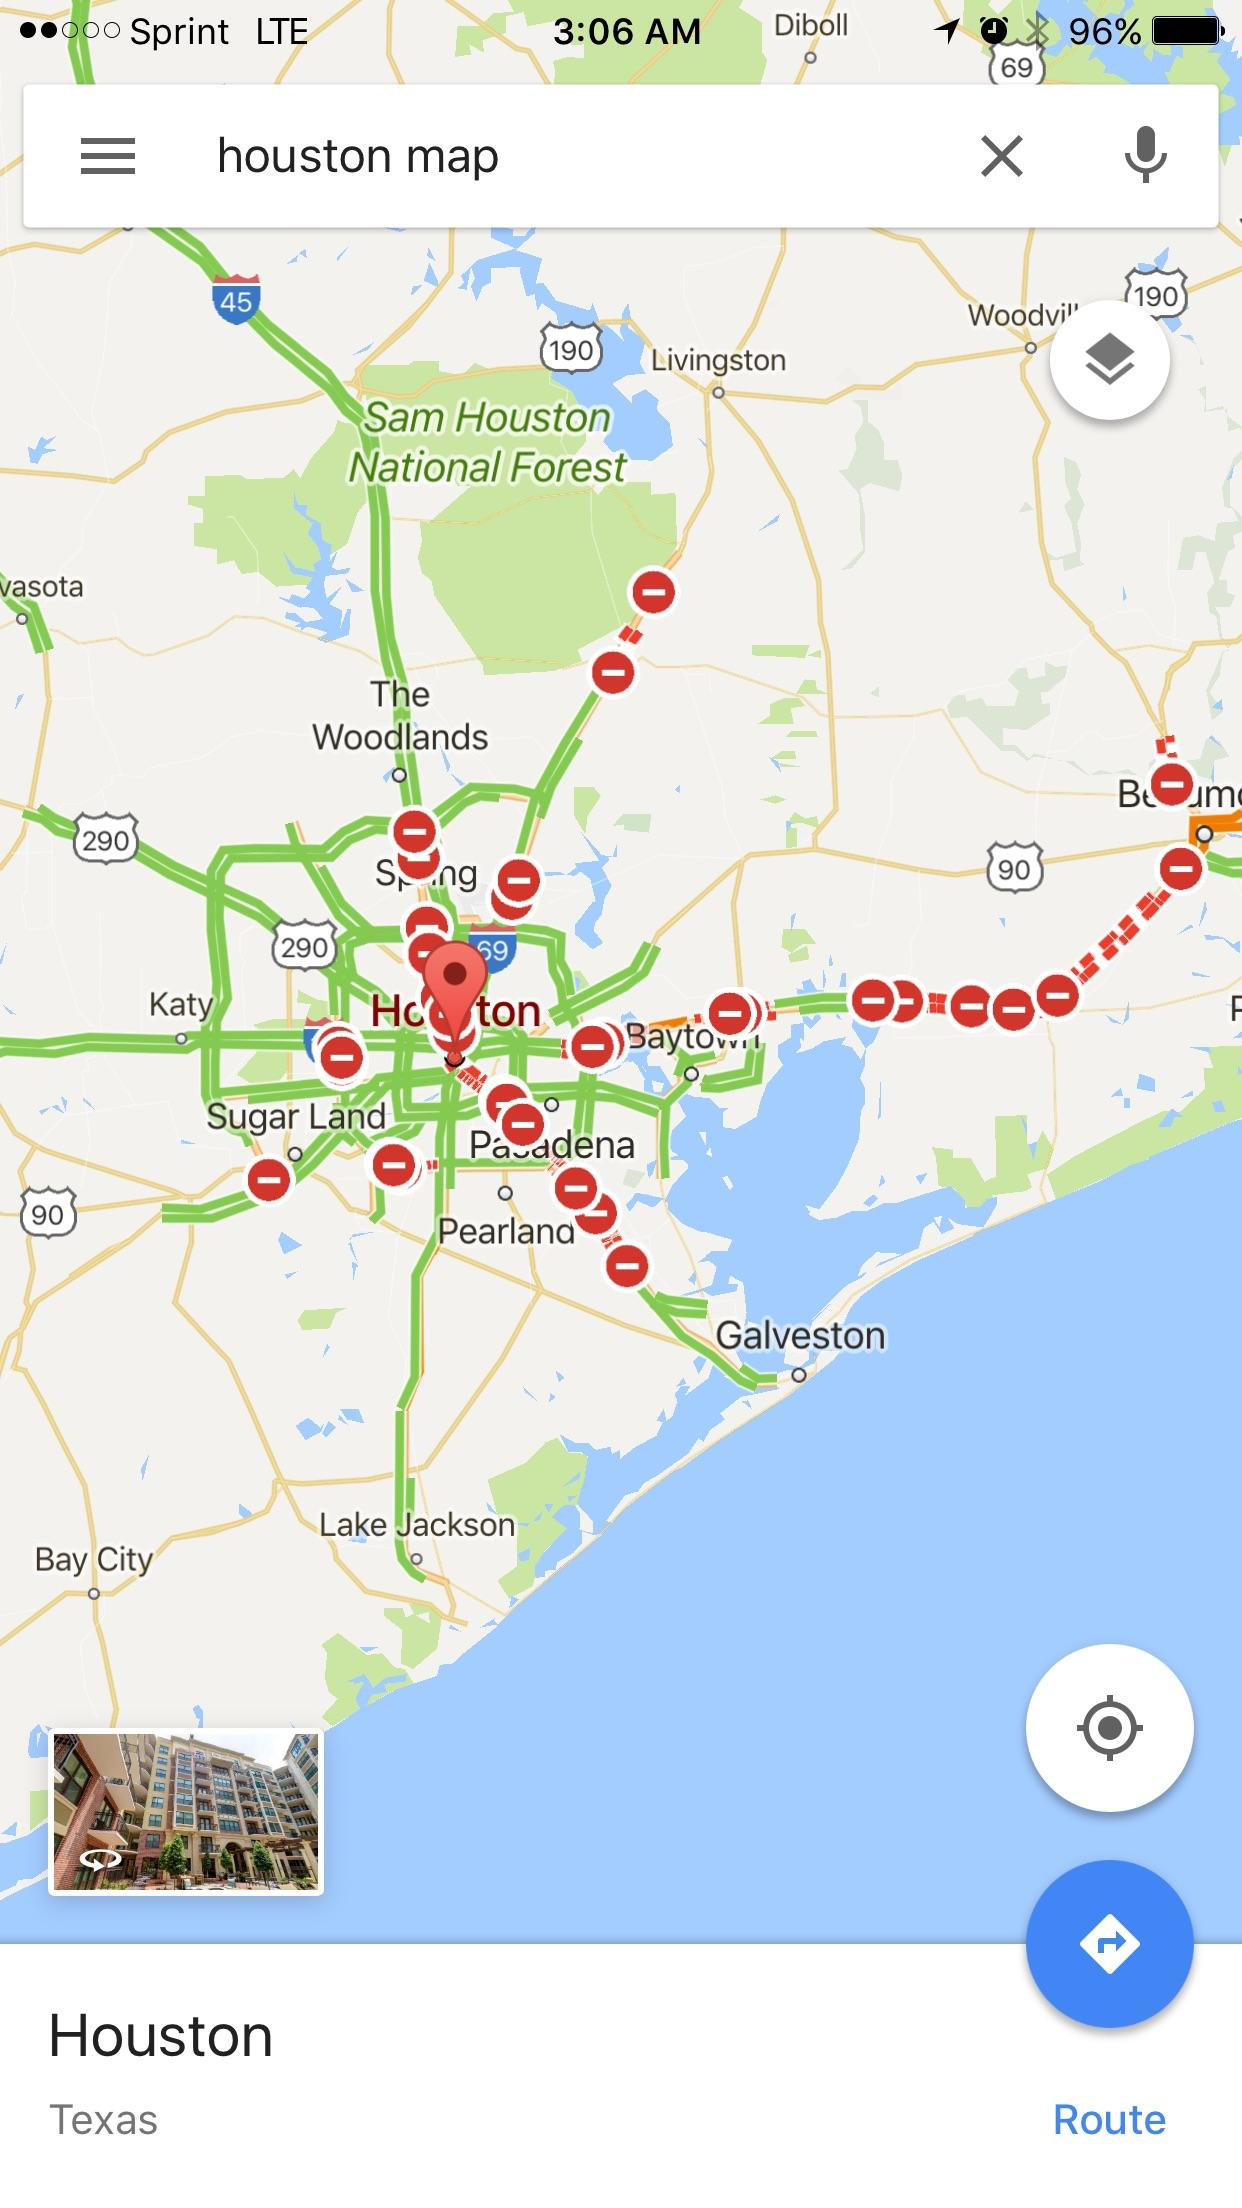 Google Map Of All The Roads Closed In Texas Due To Hurricane Harvey - Google Maps Galveston Texas